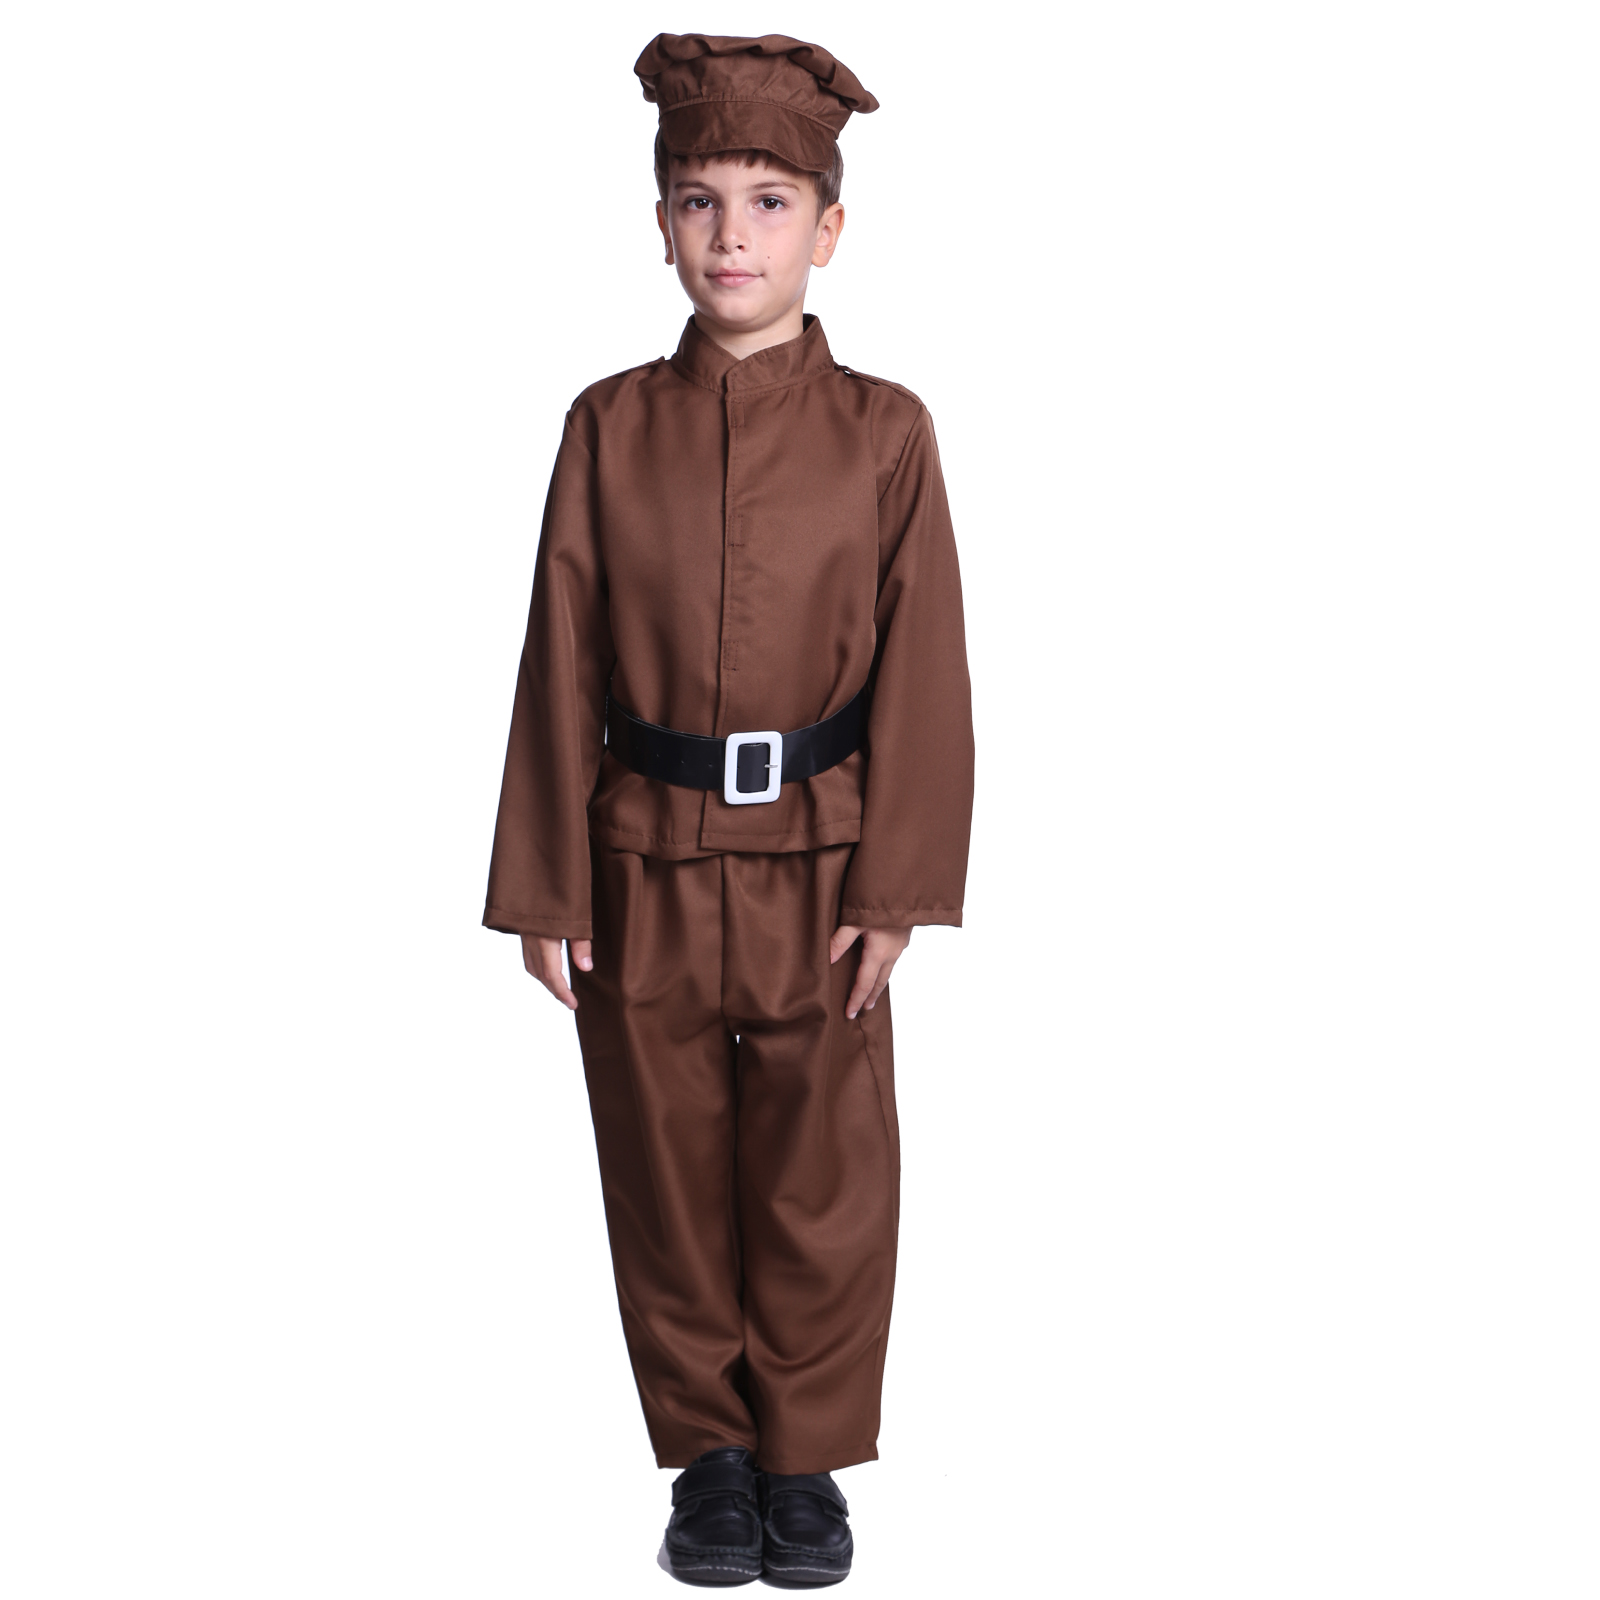 ww2 kinder junge soldaten uniform kost m wehrmacht milit r. Black Bedroom Furniture Sets. Home Design Ideas